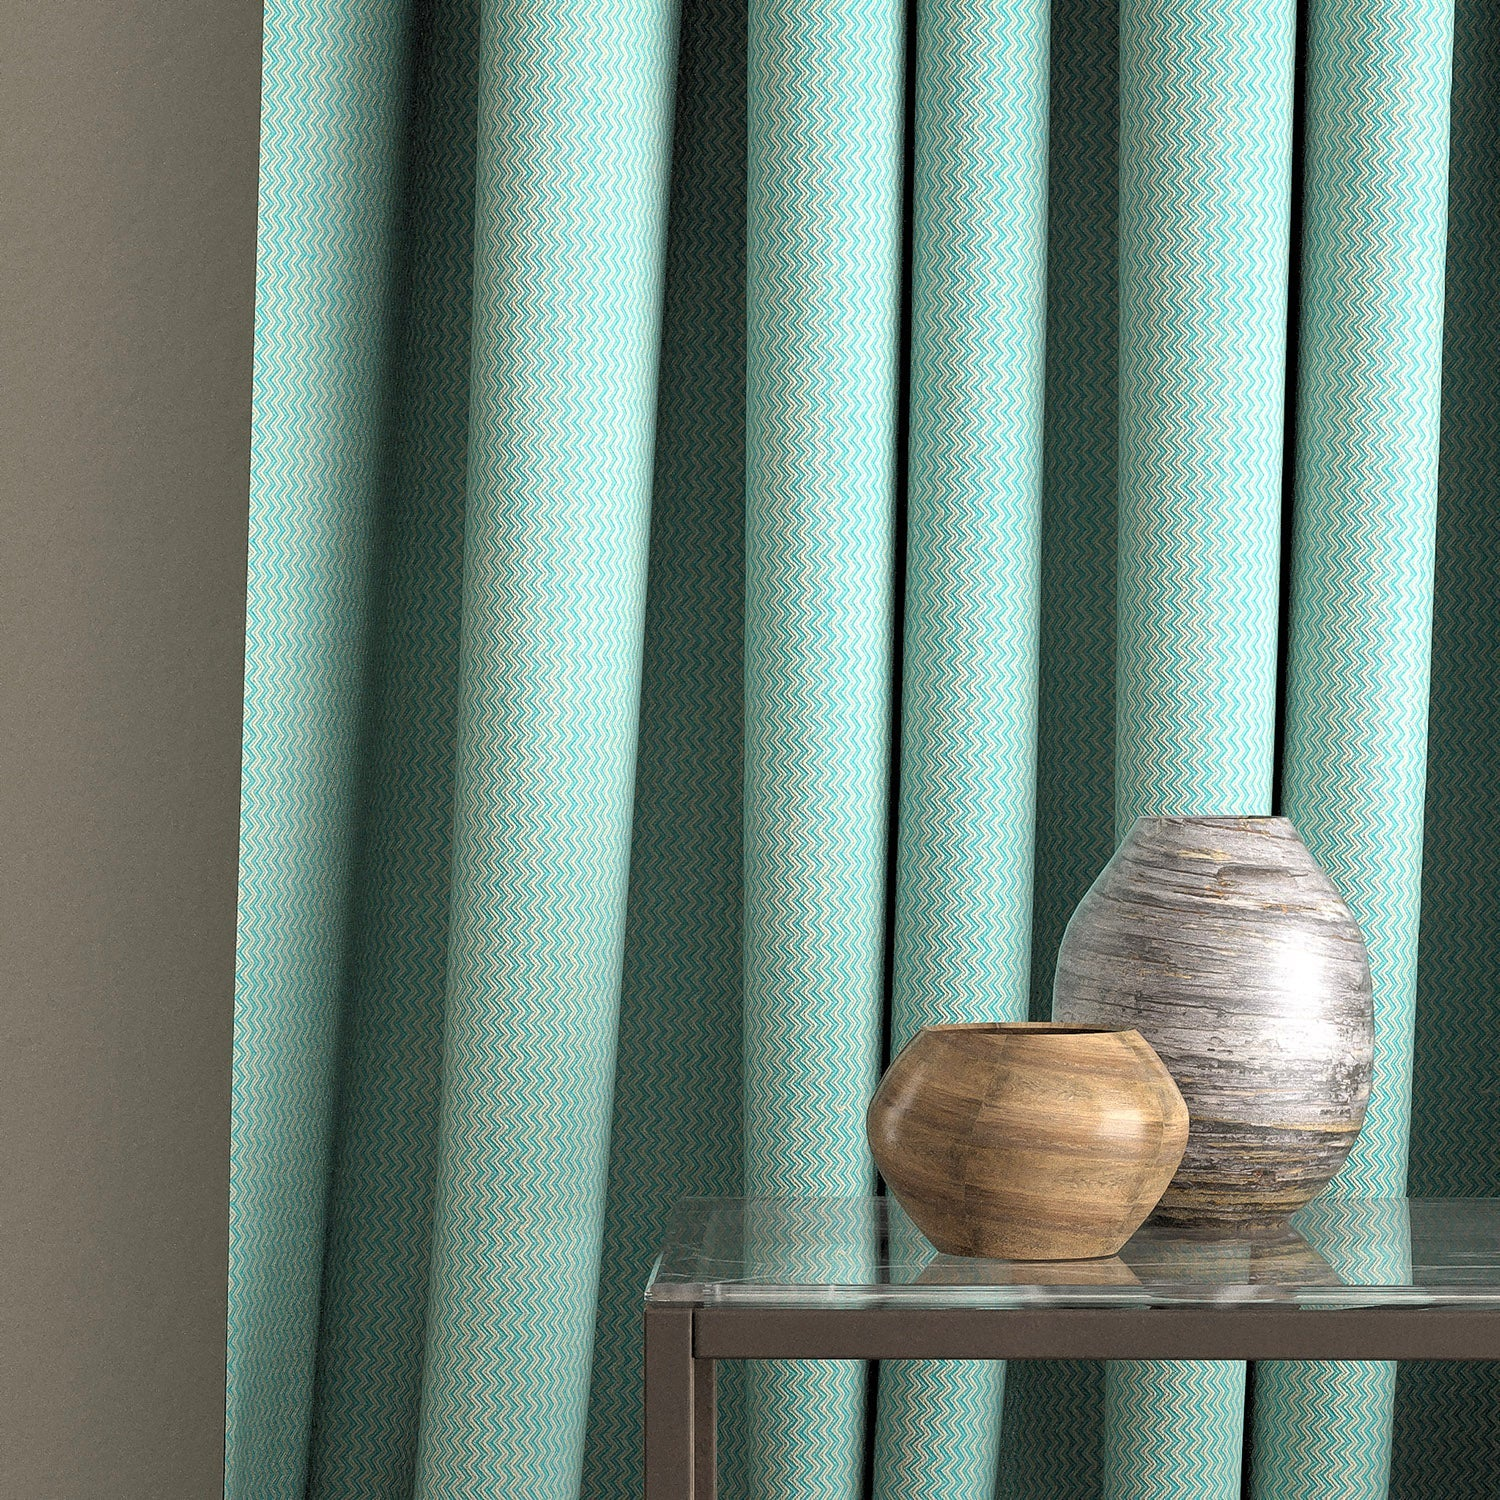 Curtain in a turquoise zig zag fabric with a stain resistant finish